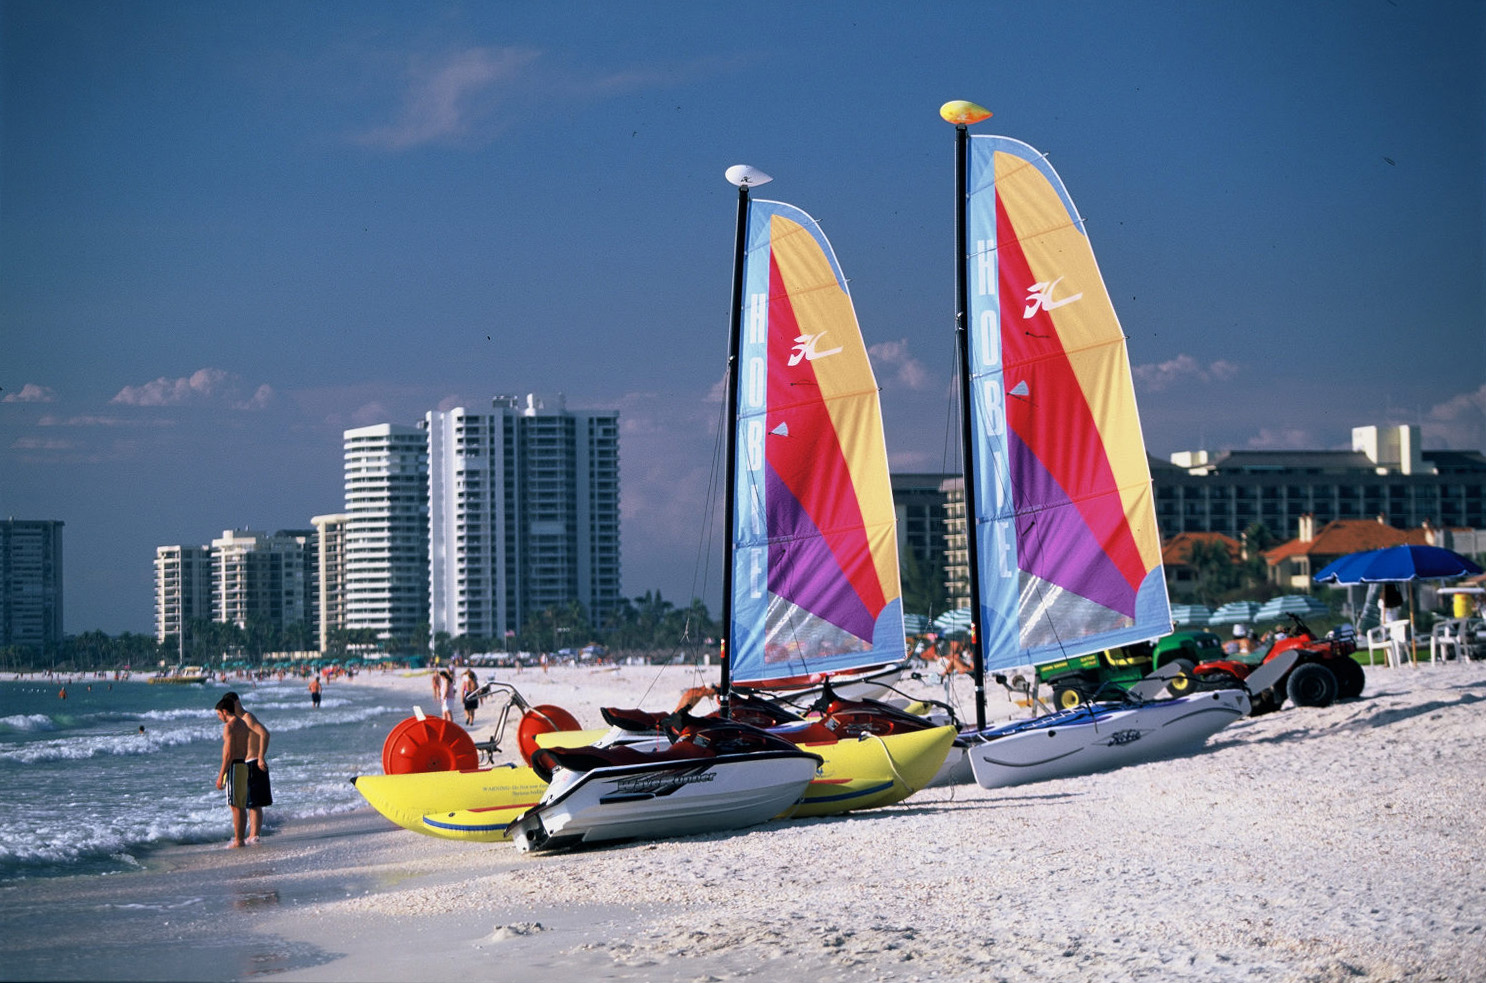 Things to Do in Marco Island | Naples, Marco Island & Everglades on map of broward county neighborhoods, map of key west neighborhoods, map of tamarac neighborhoods, map of fort lauderdale neighborhoods, map of coral springs neighborhoods, map of atlanta neighborhoods, map of north miami neighborhoods, map of saint augustine neighborhoods, map of charleston neighborhoods, map of baton rouge neighborhoods, map of chicago neighborhoods, map of tallahassee neighborhoods, map of venice neighborhoods, map of philadelphia neighborhoods, map of vero beach neighborhoods, map of new york city neighborhoods, map of charlotte neighborhoods, map of the villages neighborhoods,